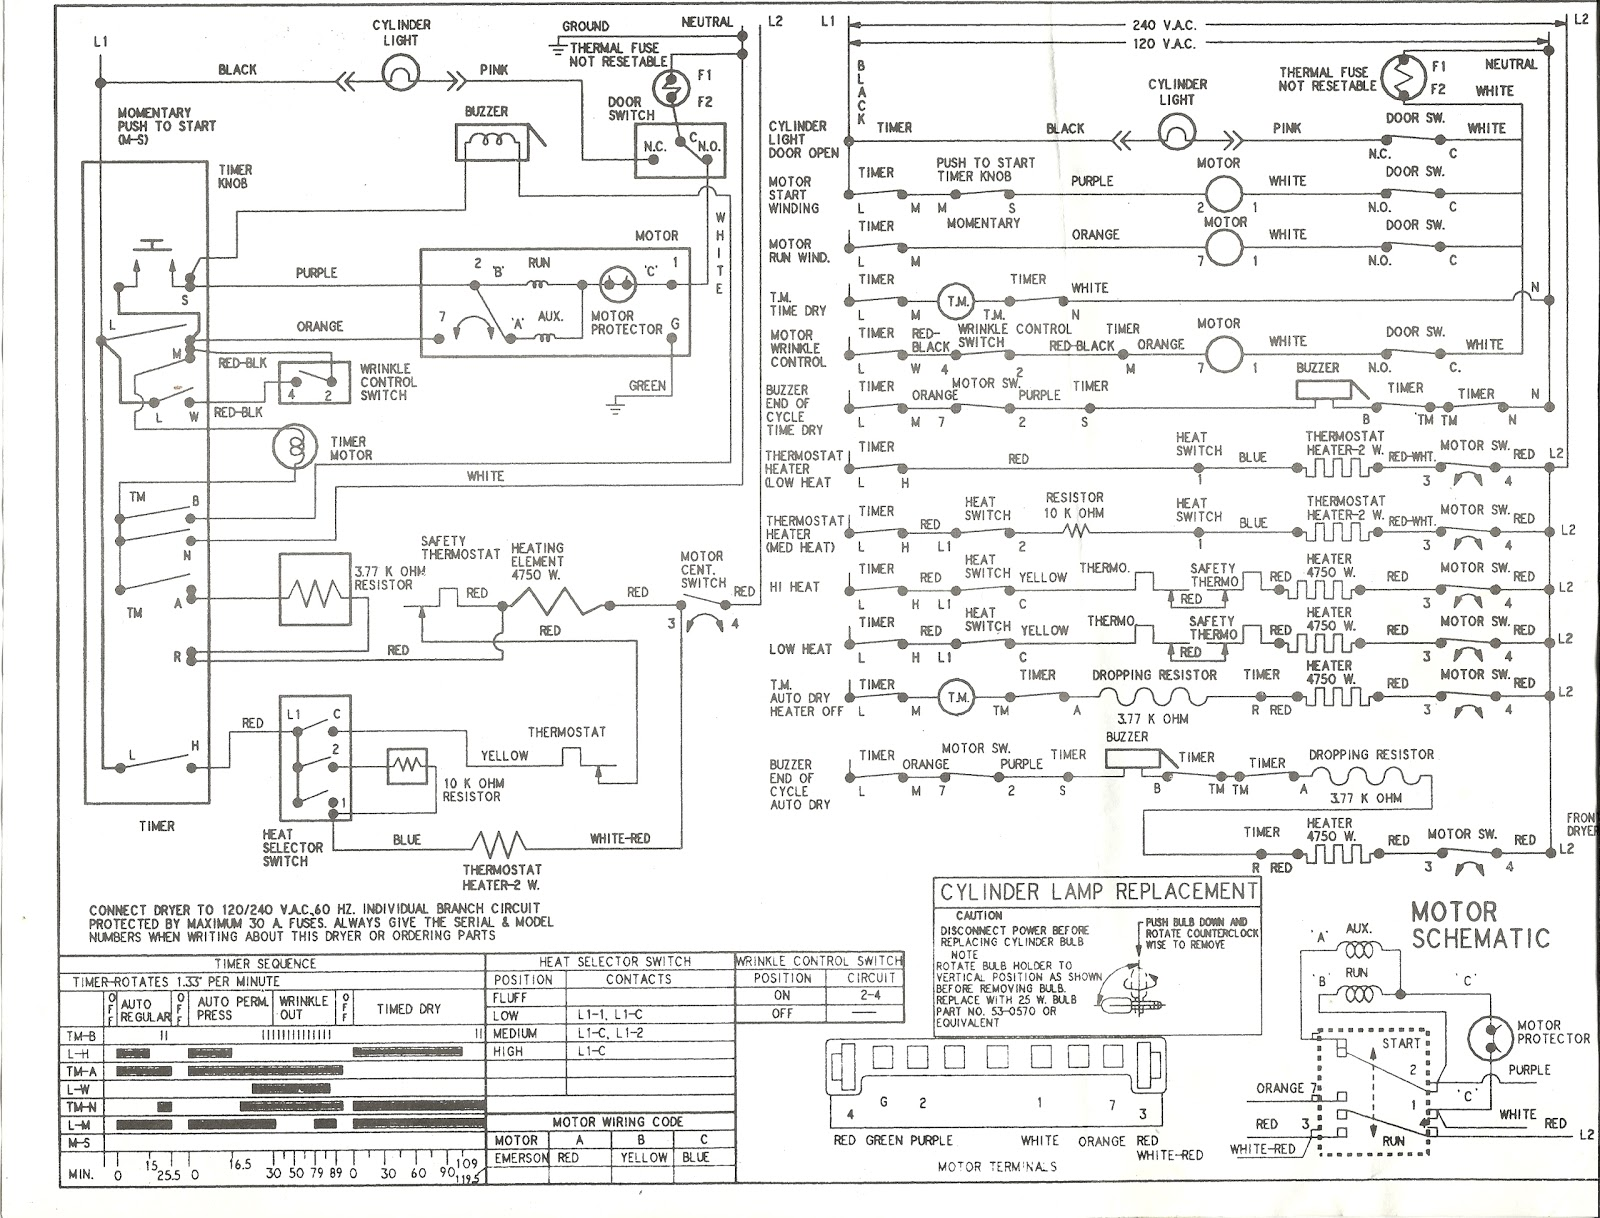 Wiring Diagram For Ge Oven Model Number Jckp16gs 1